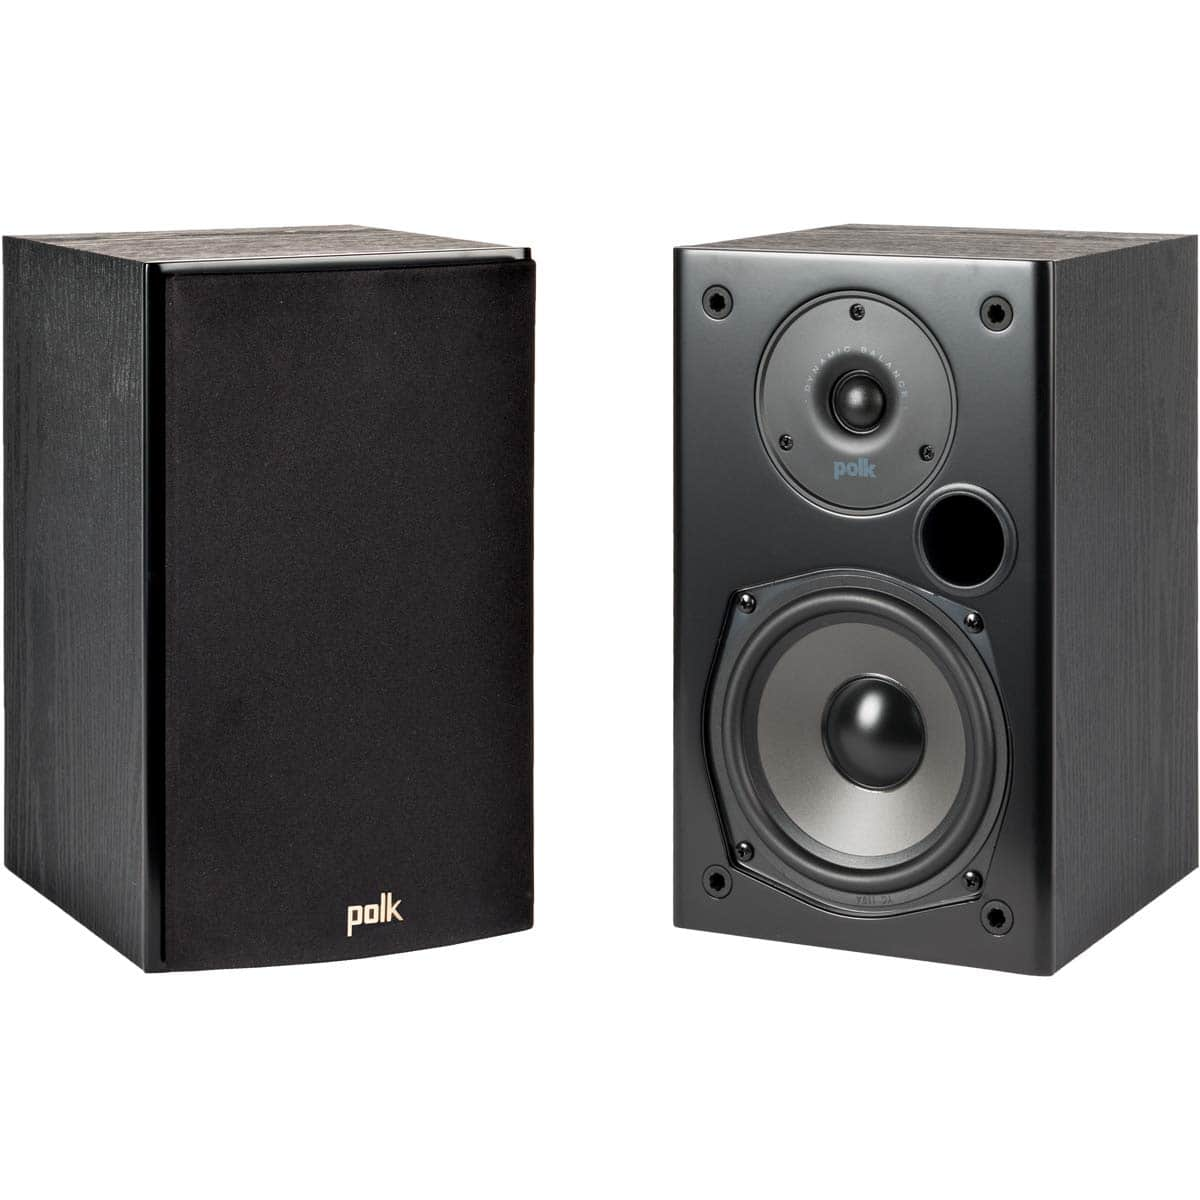 Polk Audio T15 100 Watt Home Theater Bookshelf Speakers – Hi-Res Audio with Deep Bass Response | Dolby and DTS Surround | Wall-Mountable| Pair, Black - $69 at Amazon